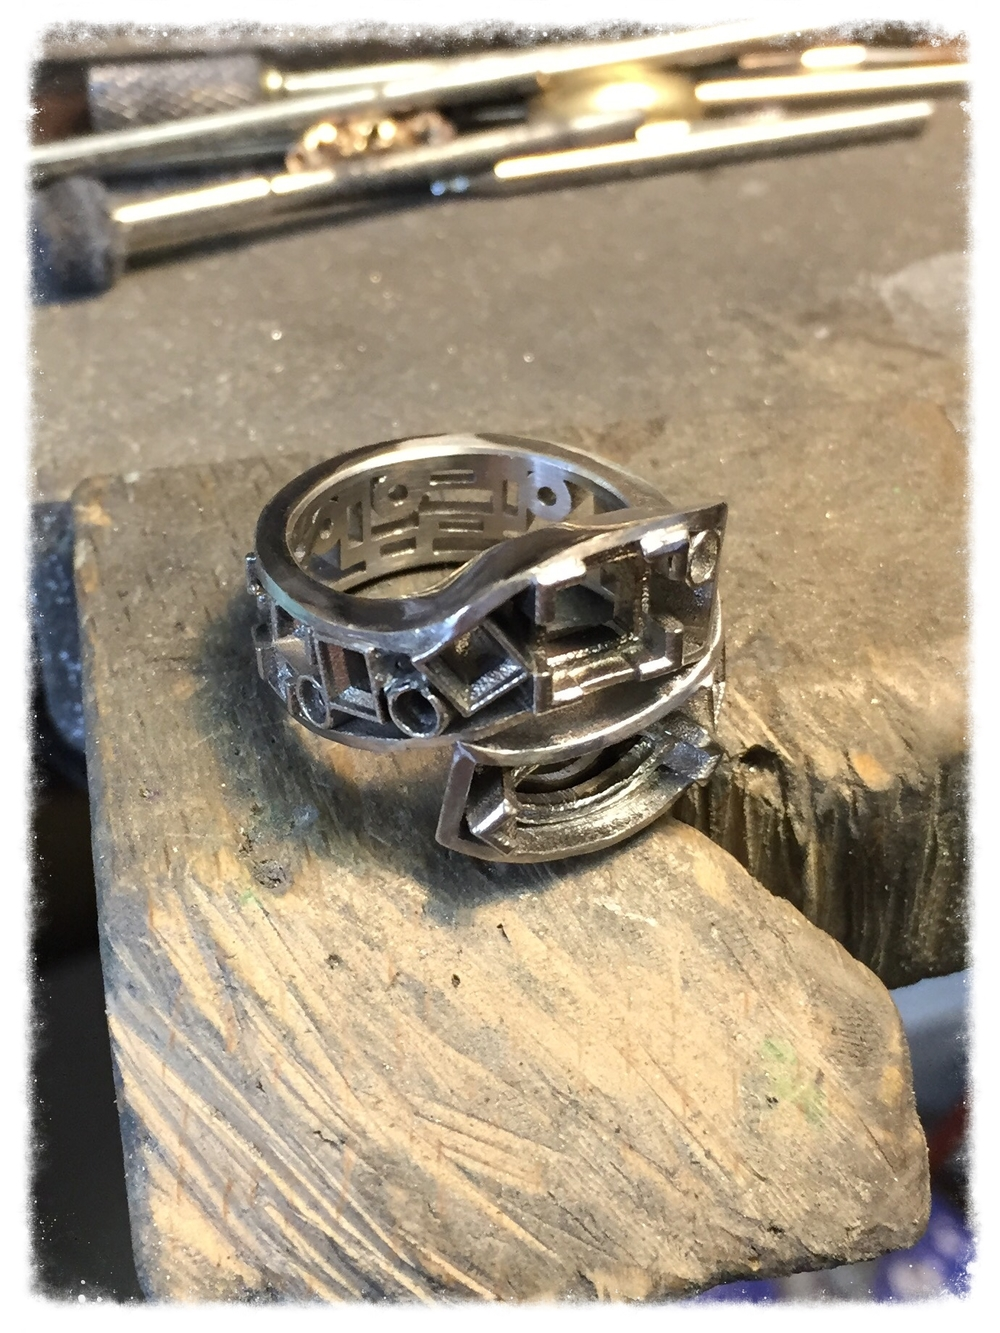 After the client approved the CAD version, her ring was printed in resin with a 3d printer and then cast using the traditional lost wax method.  In the lost wax method the resin model is encased in plaster and then placed in a special oven to burn out the resin -- leaving an exact negative of the ring.